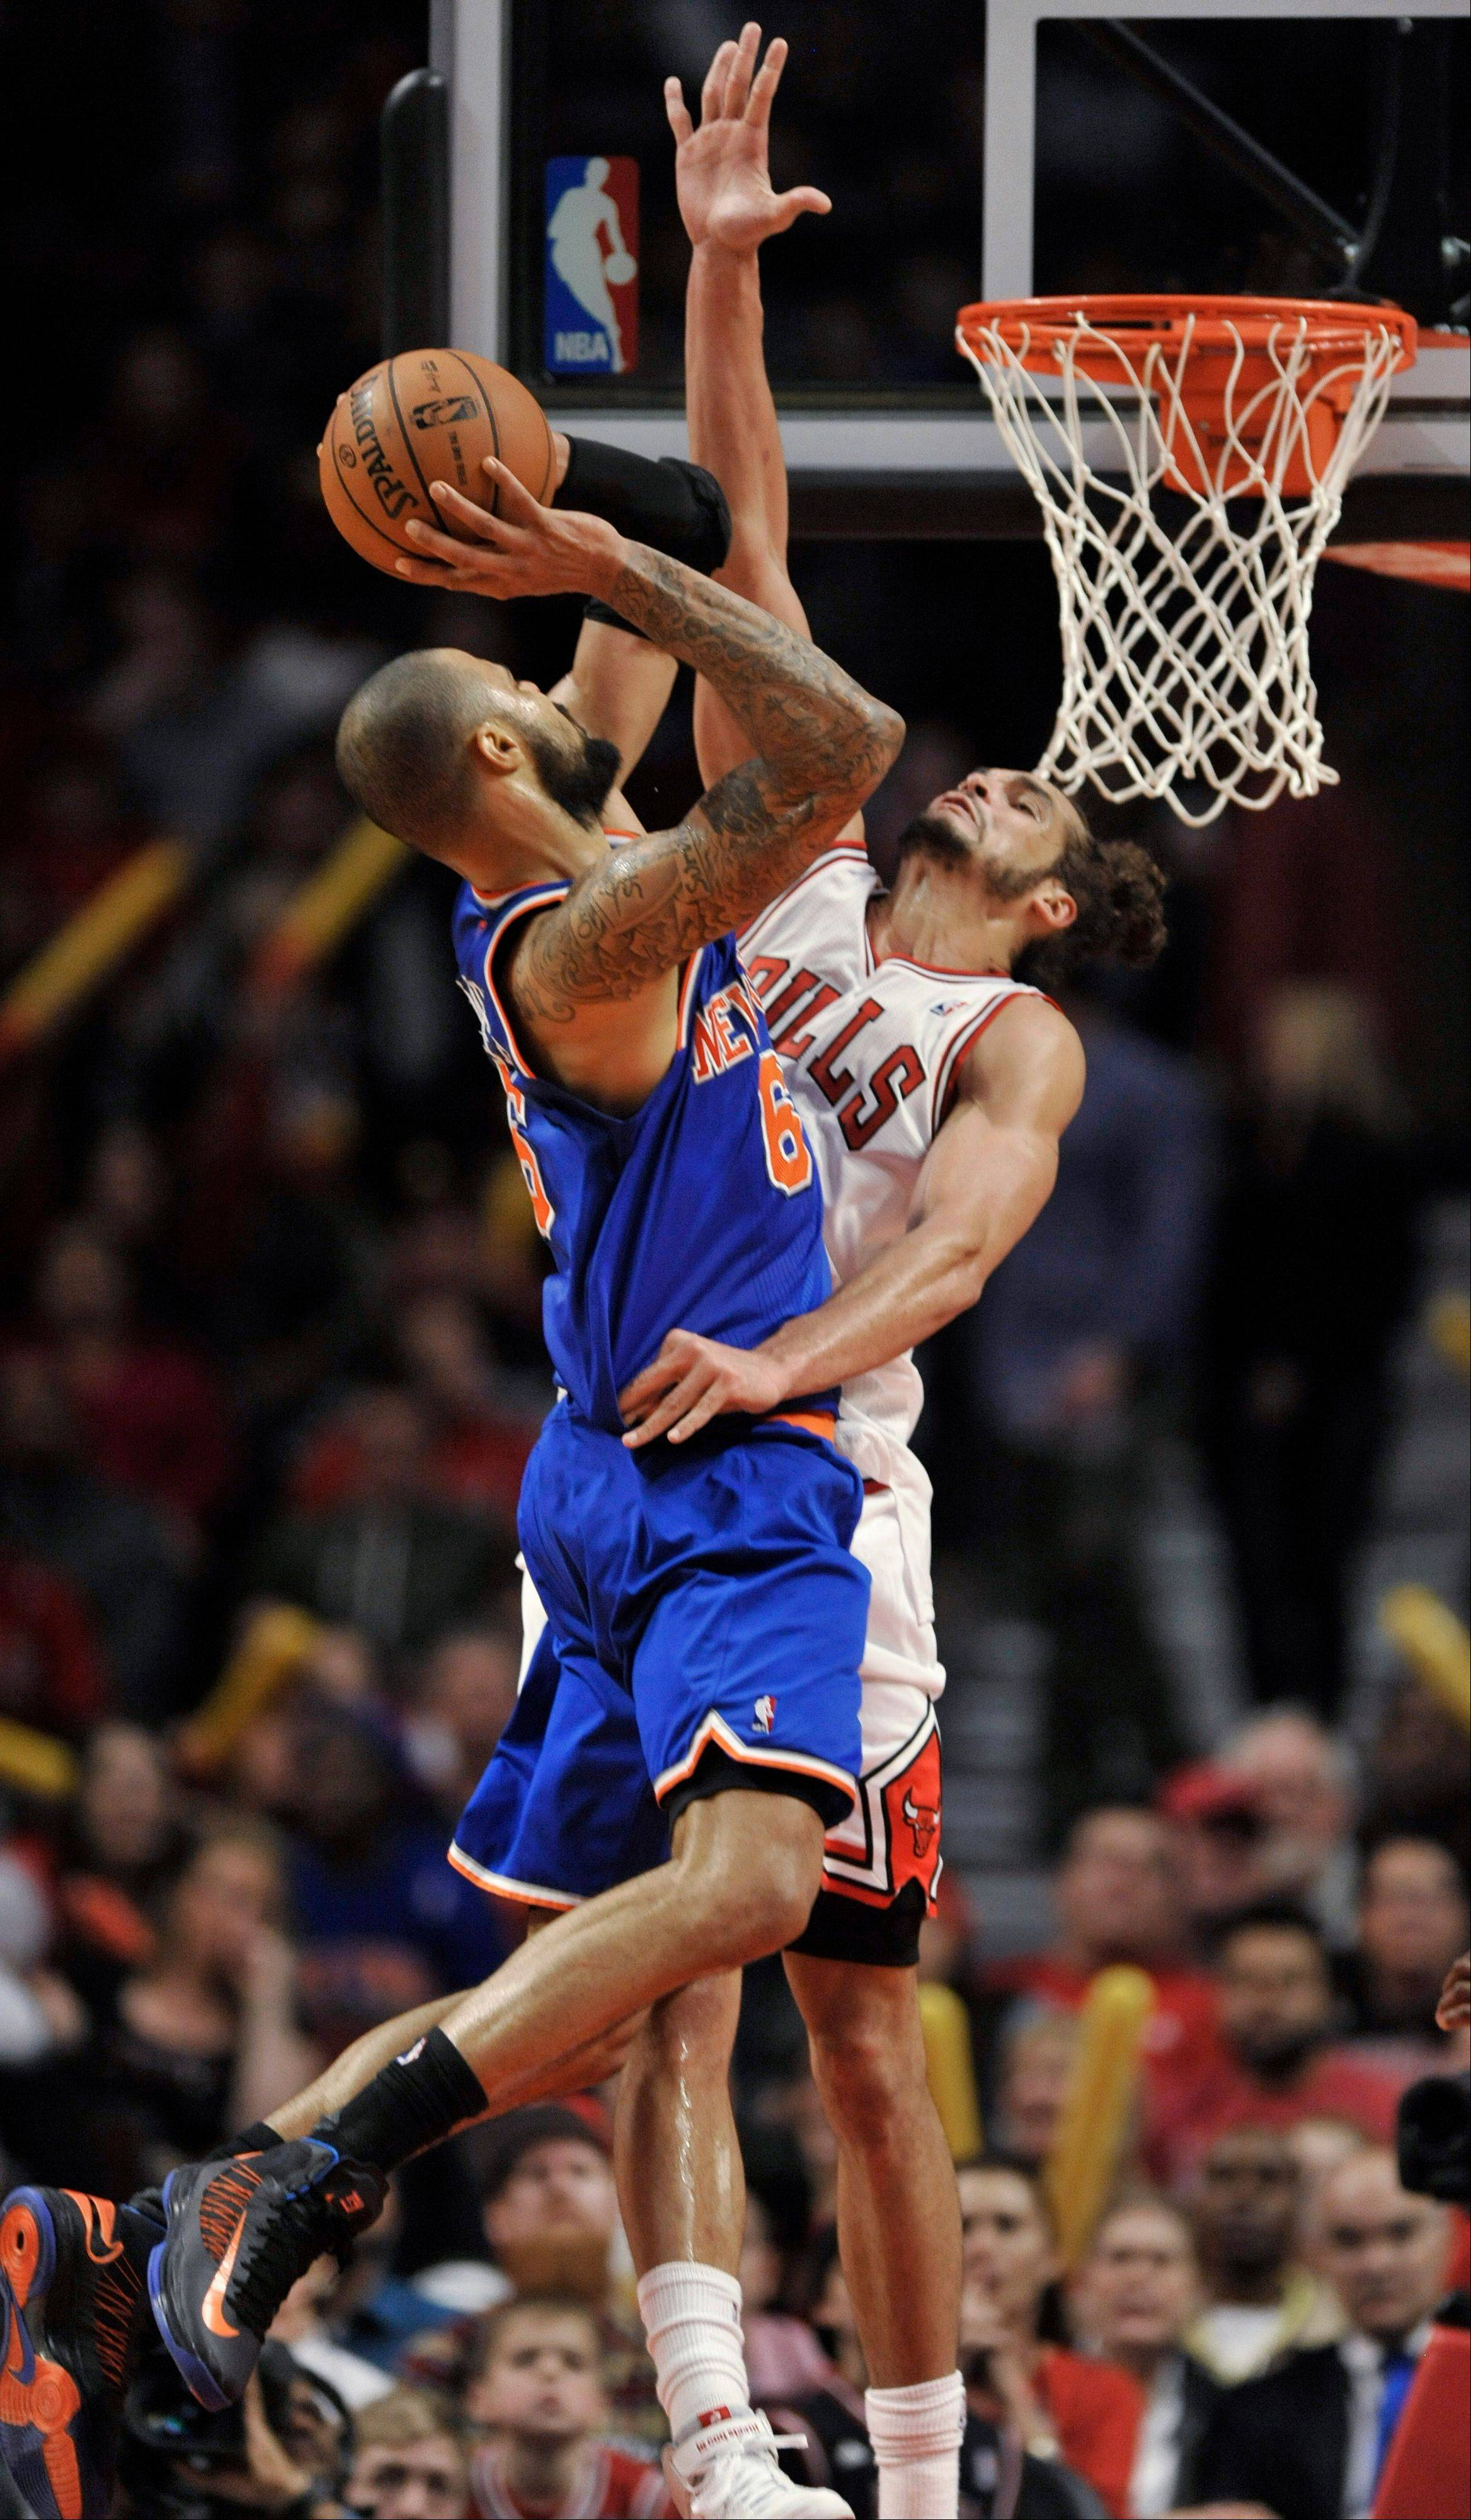 The Bulls' Joakim Noah goes up for the block and fouls the Knicks' Tyson Chandler on Saturday night.